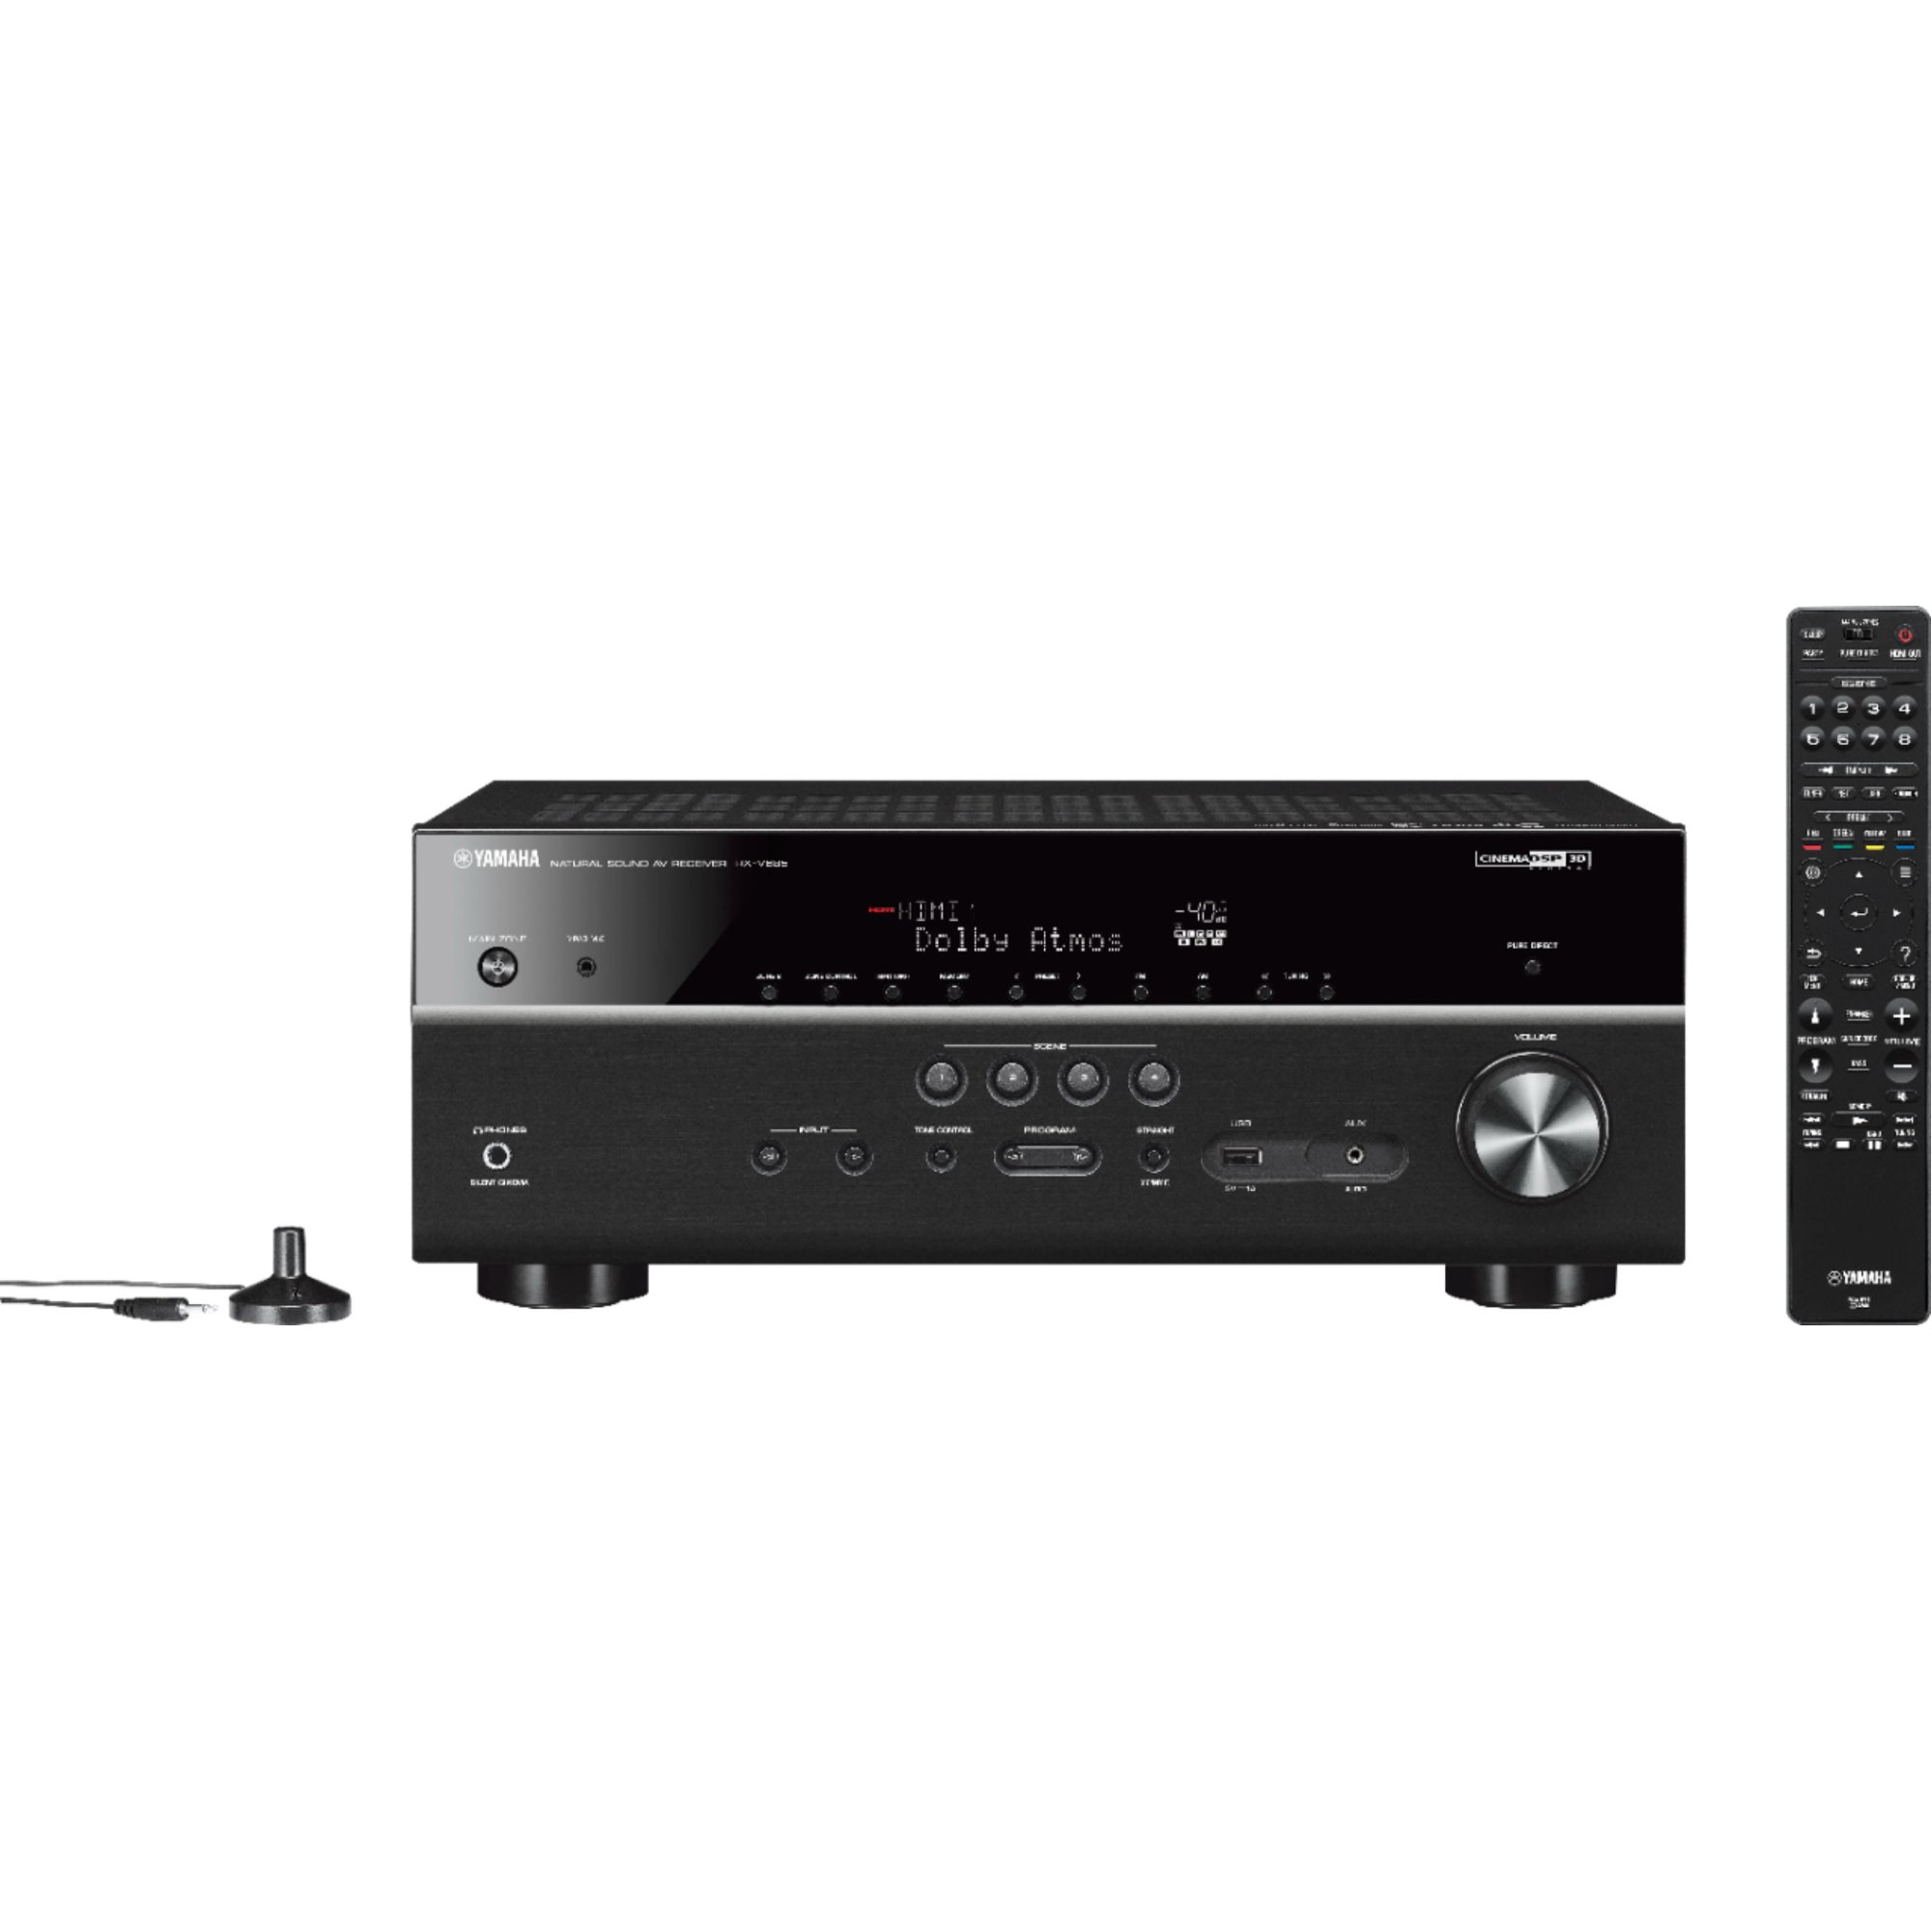 Yamaha 7 2 Channel A/V Receiver RX-V685